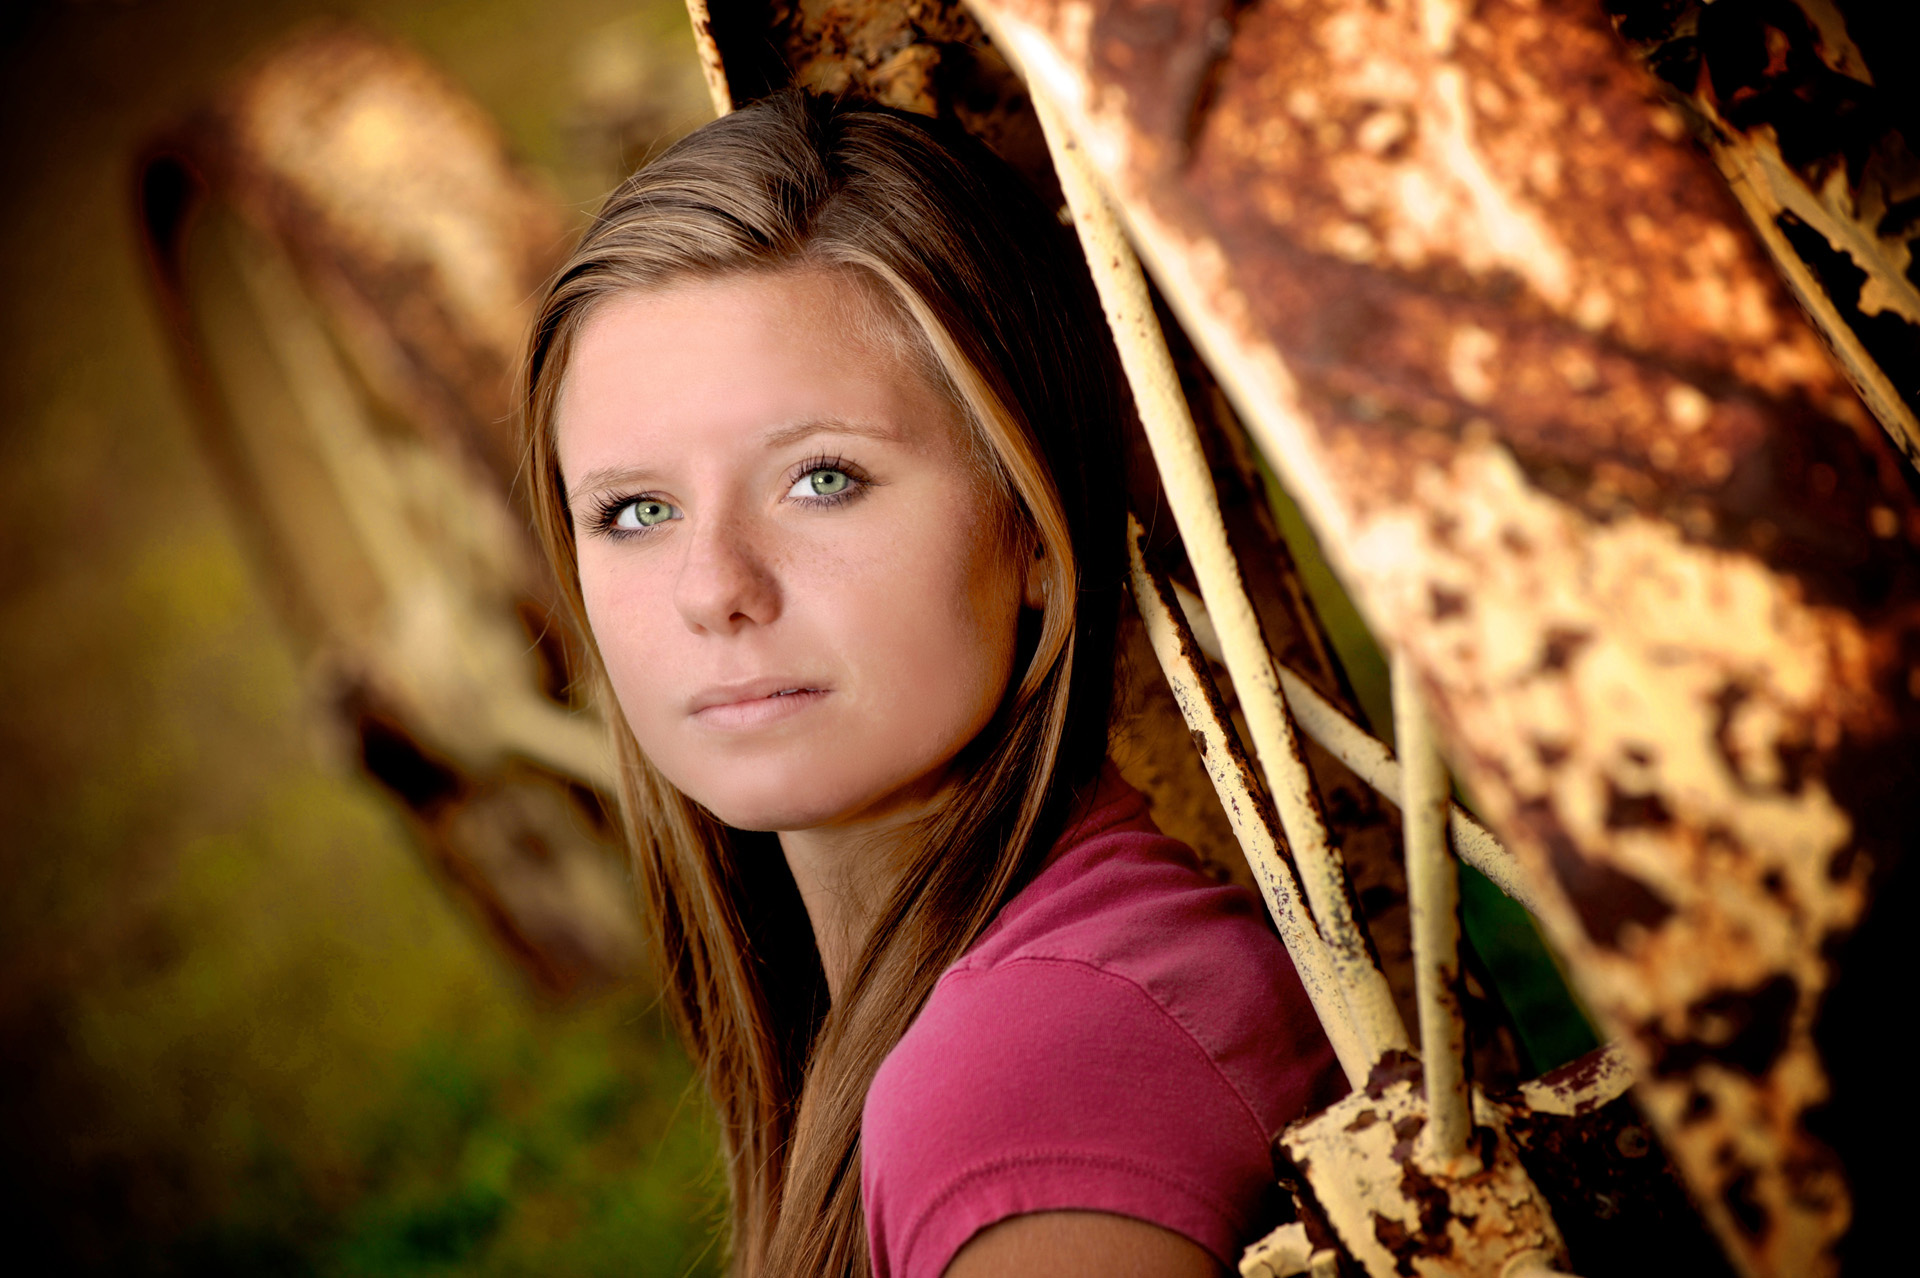 Troy , Michigan senior photographer's photo of a high school senior posing with nearby natural props used on location for their senior pictures in Troy, Michigan..